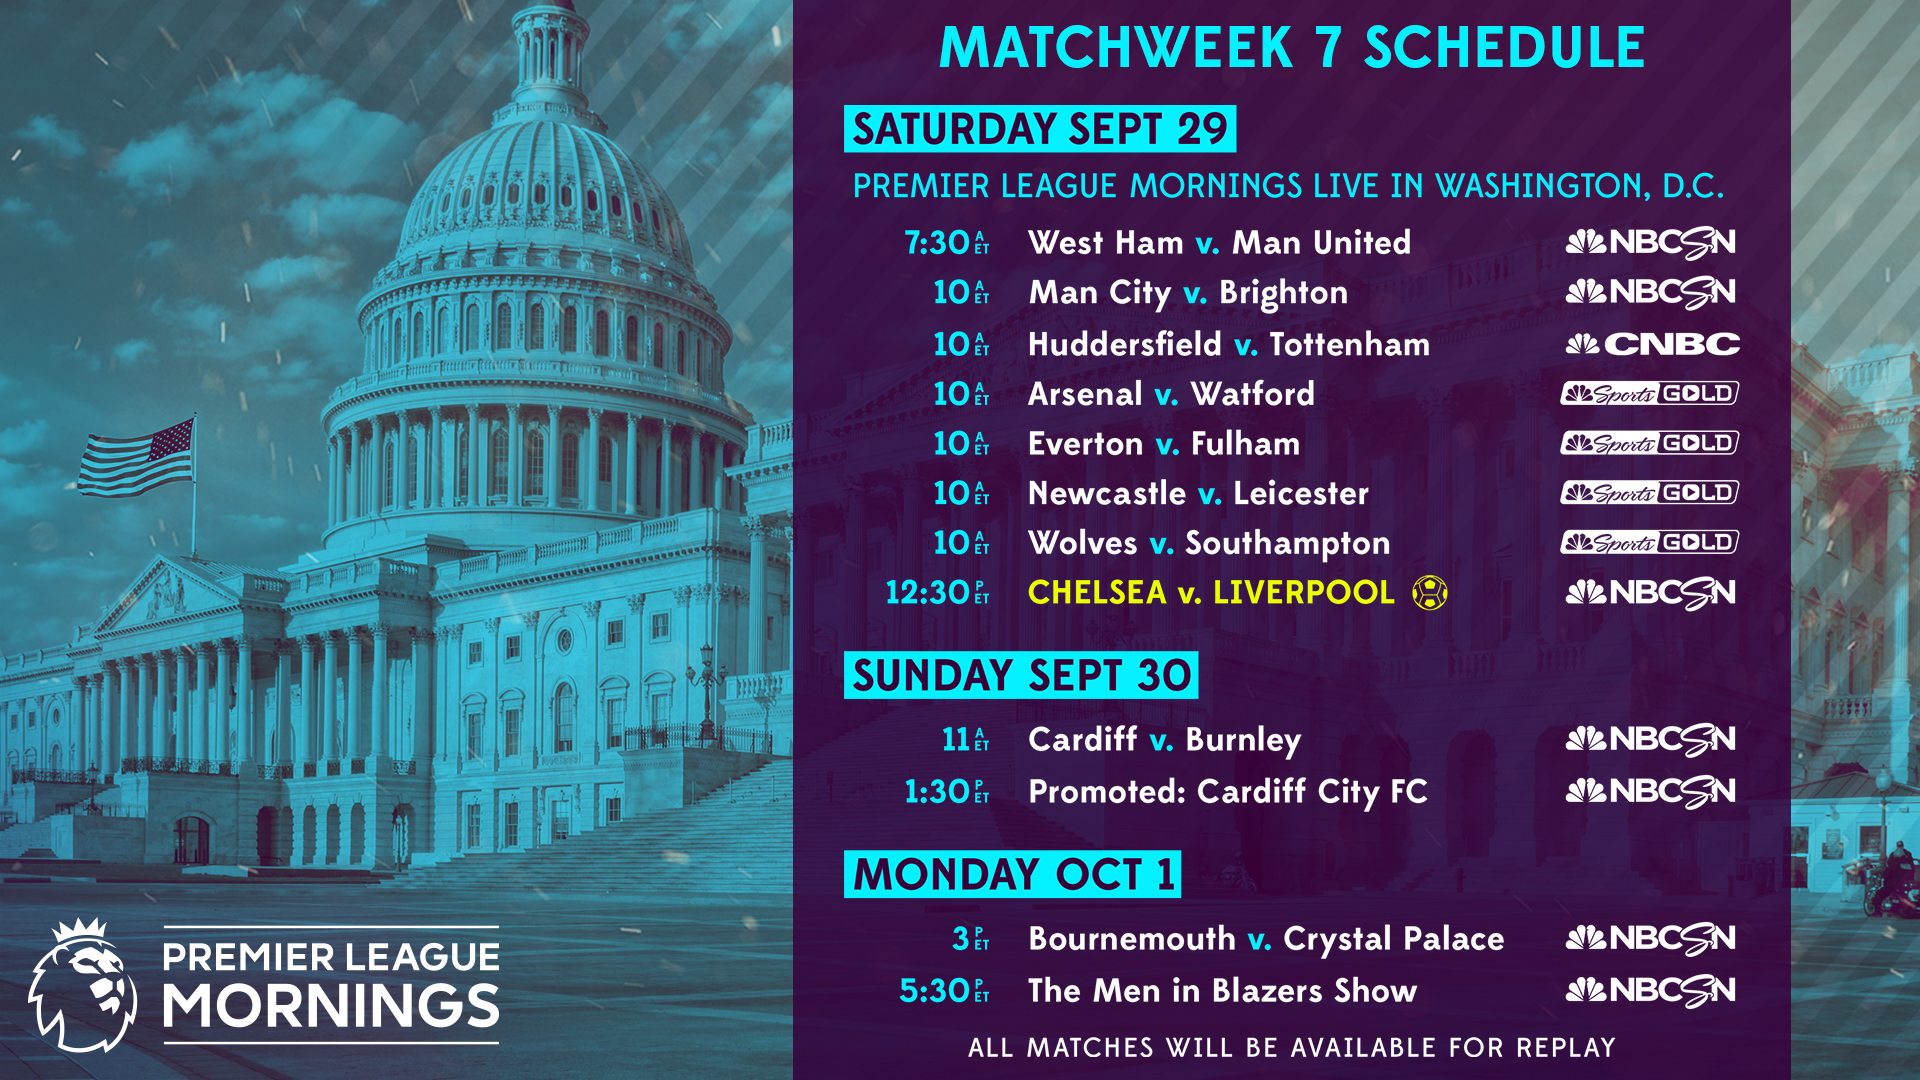 nbc sports channel soccer schedule